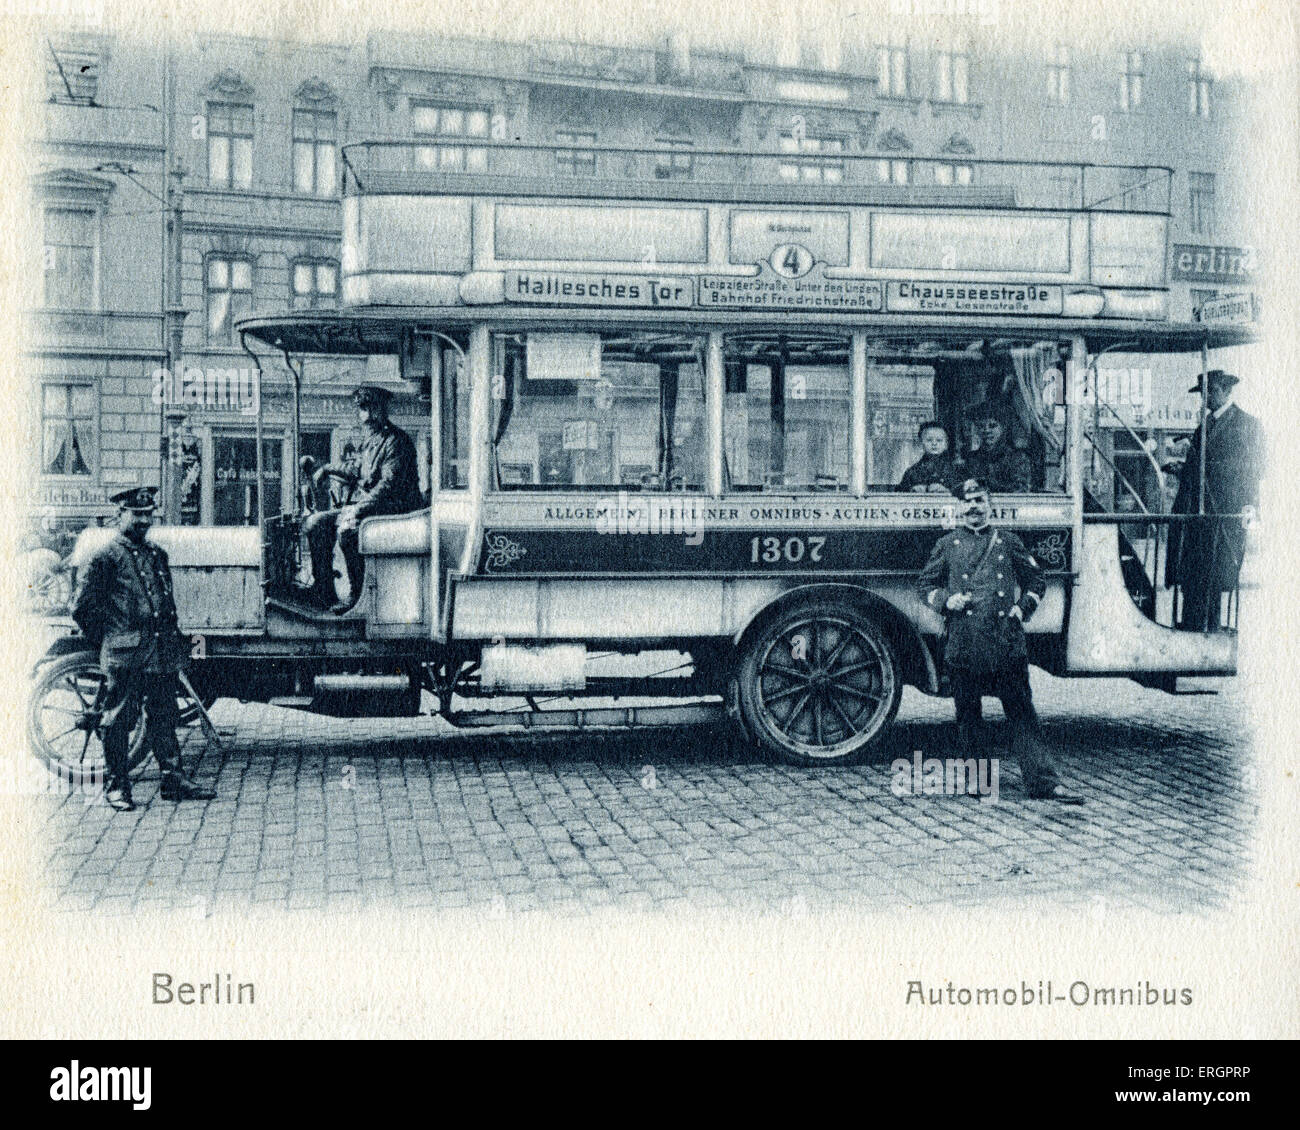 Berlin bus transport / omnibus. Open top double-decker bus with driver and conductor. Early 20th century. - Stock Image